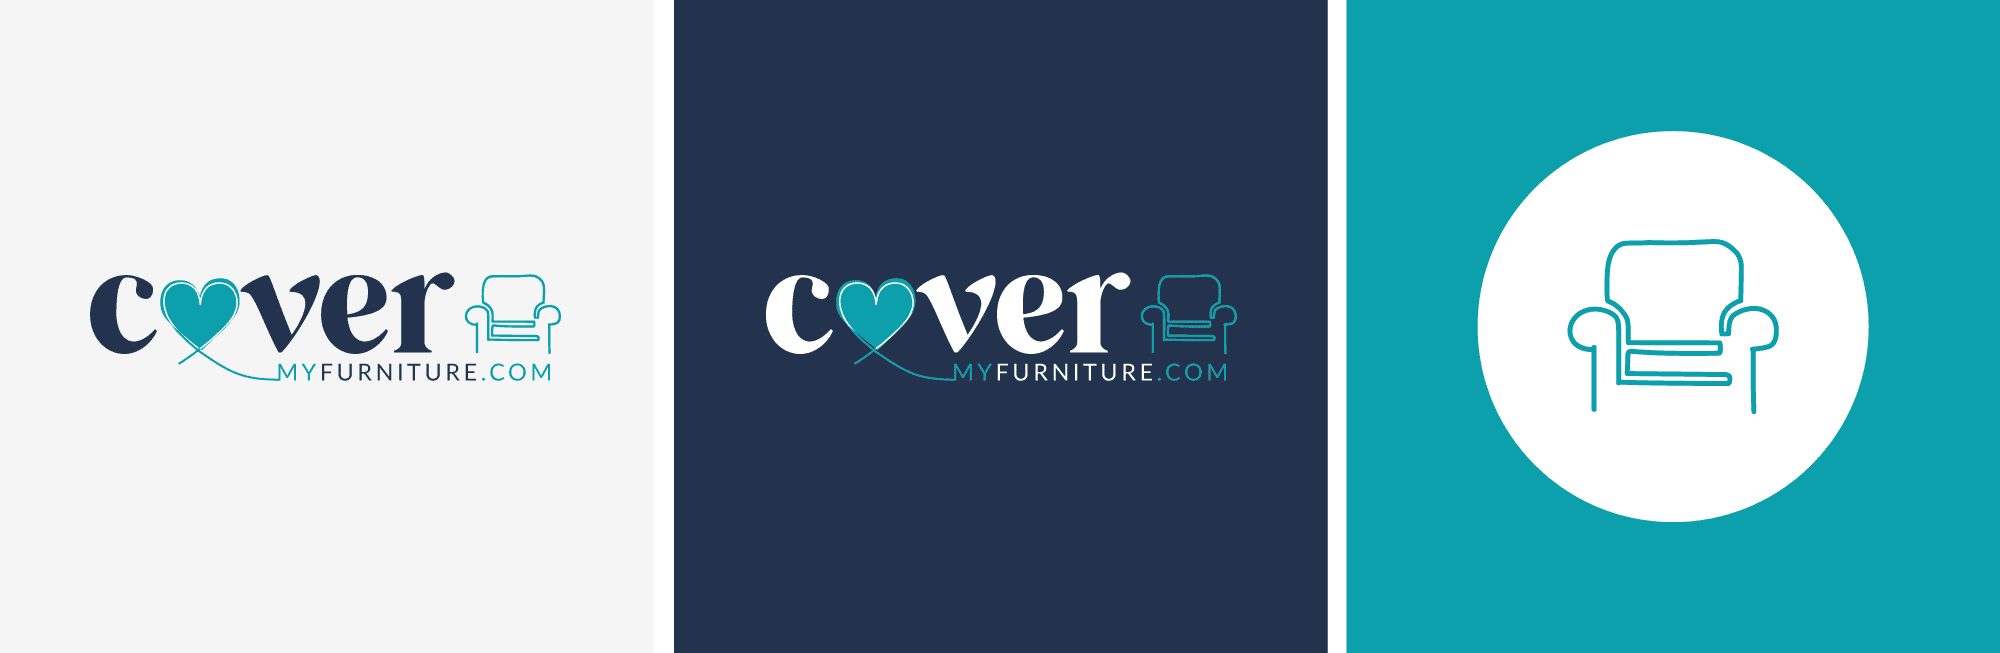 Cover My Furniture - Branding